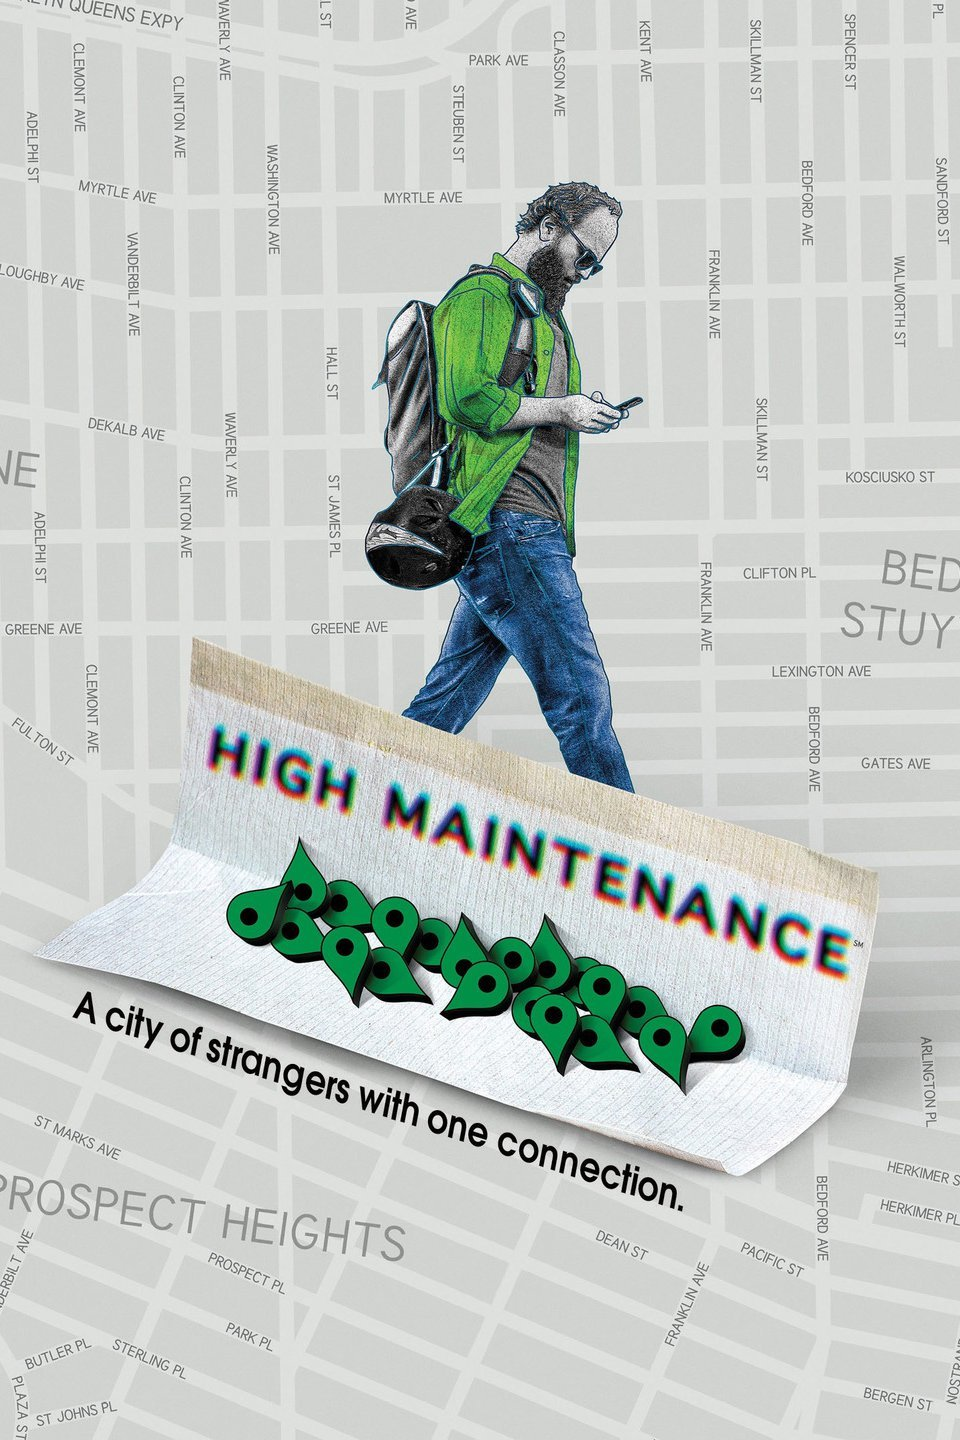 High Maintenance Review